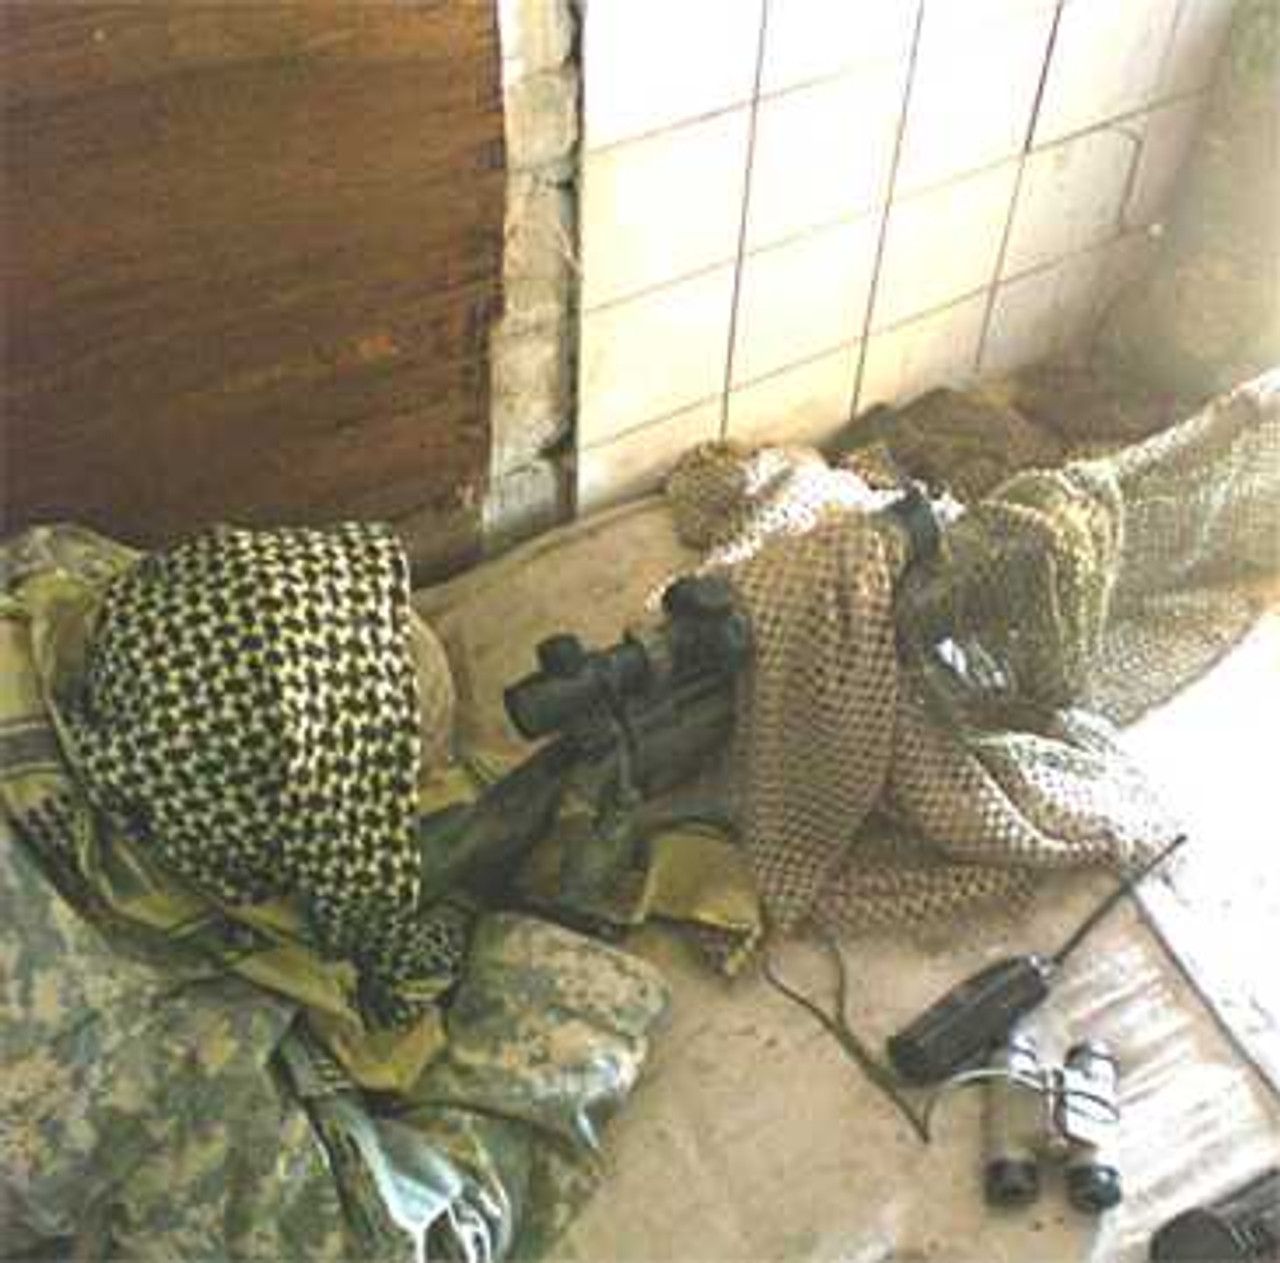 Tactical Concealment Spyder Mesh used for rifle and optic cover concealmet